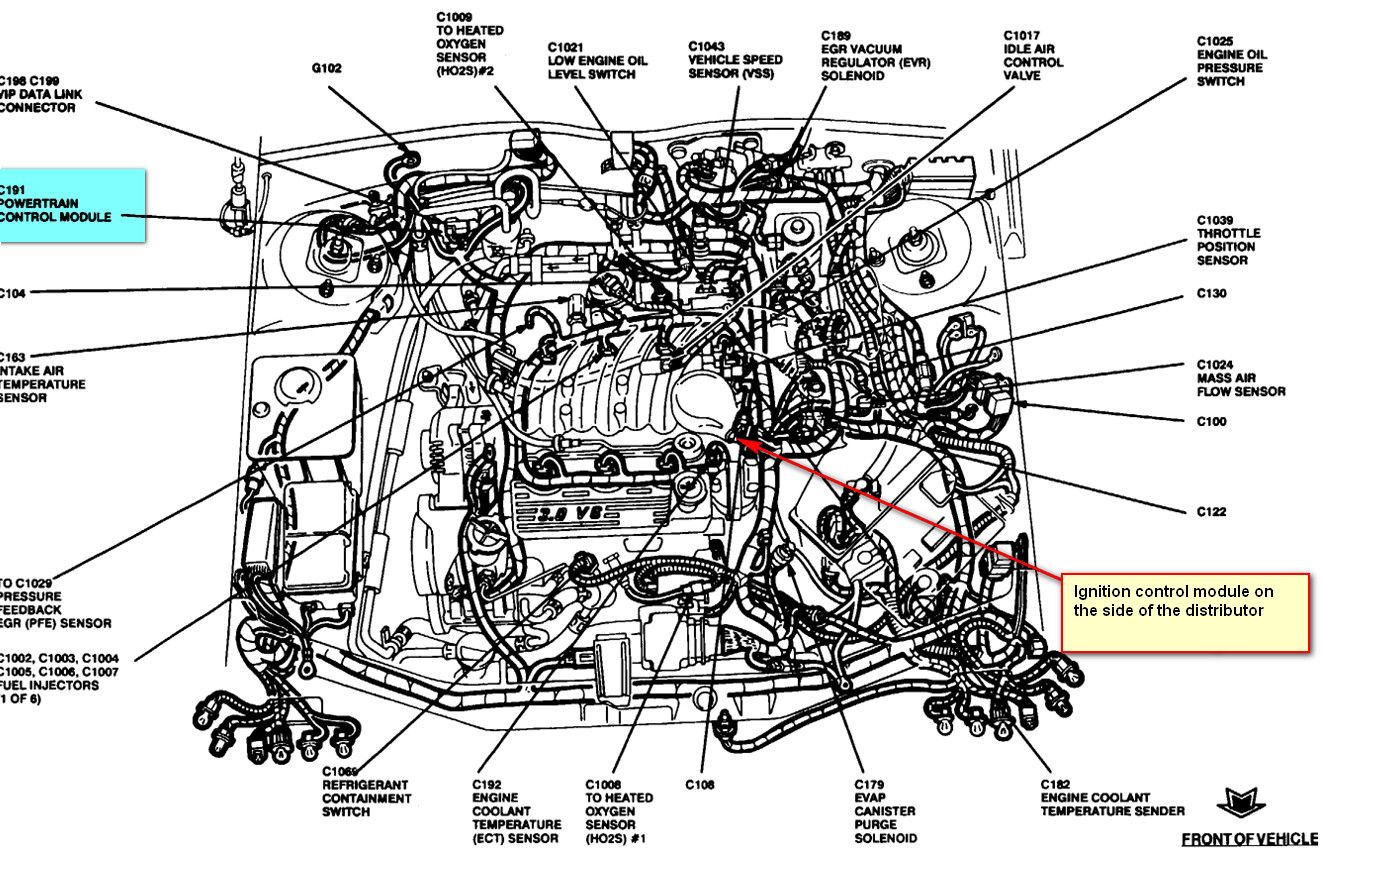 small resolution of ford powertrain control module diagram wiring diagram host ford powertrain control module diagram